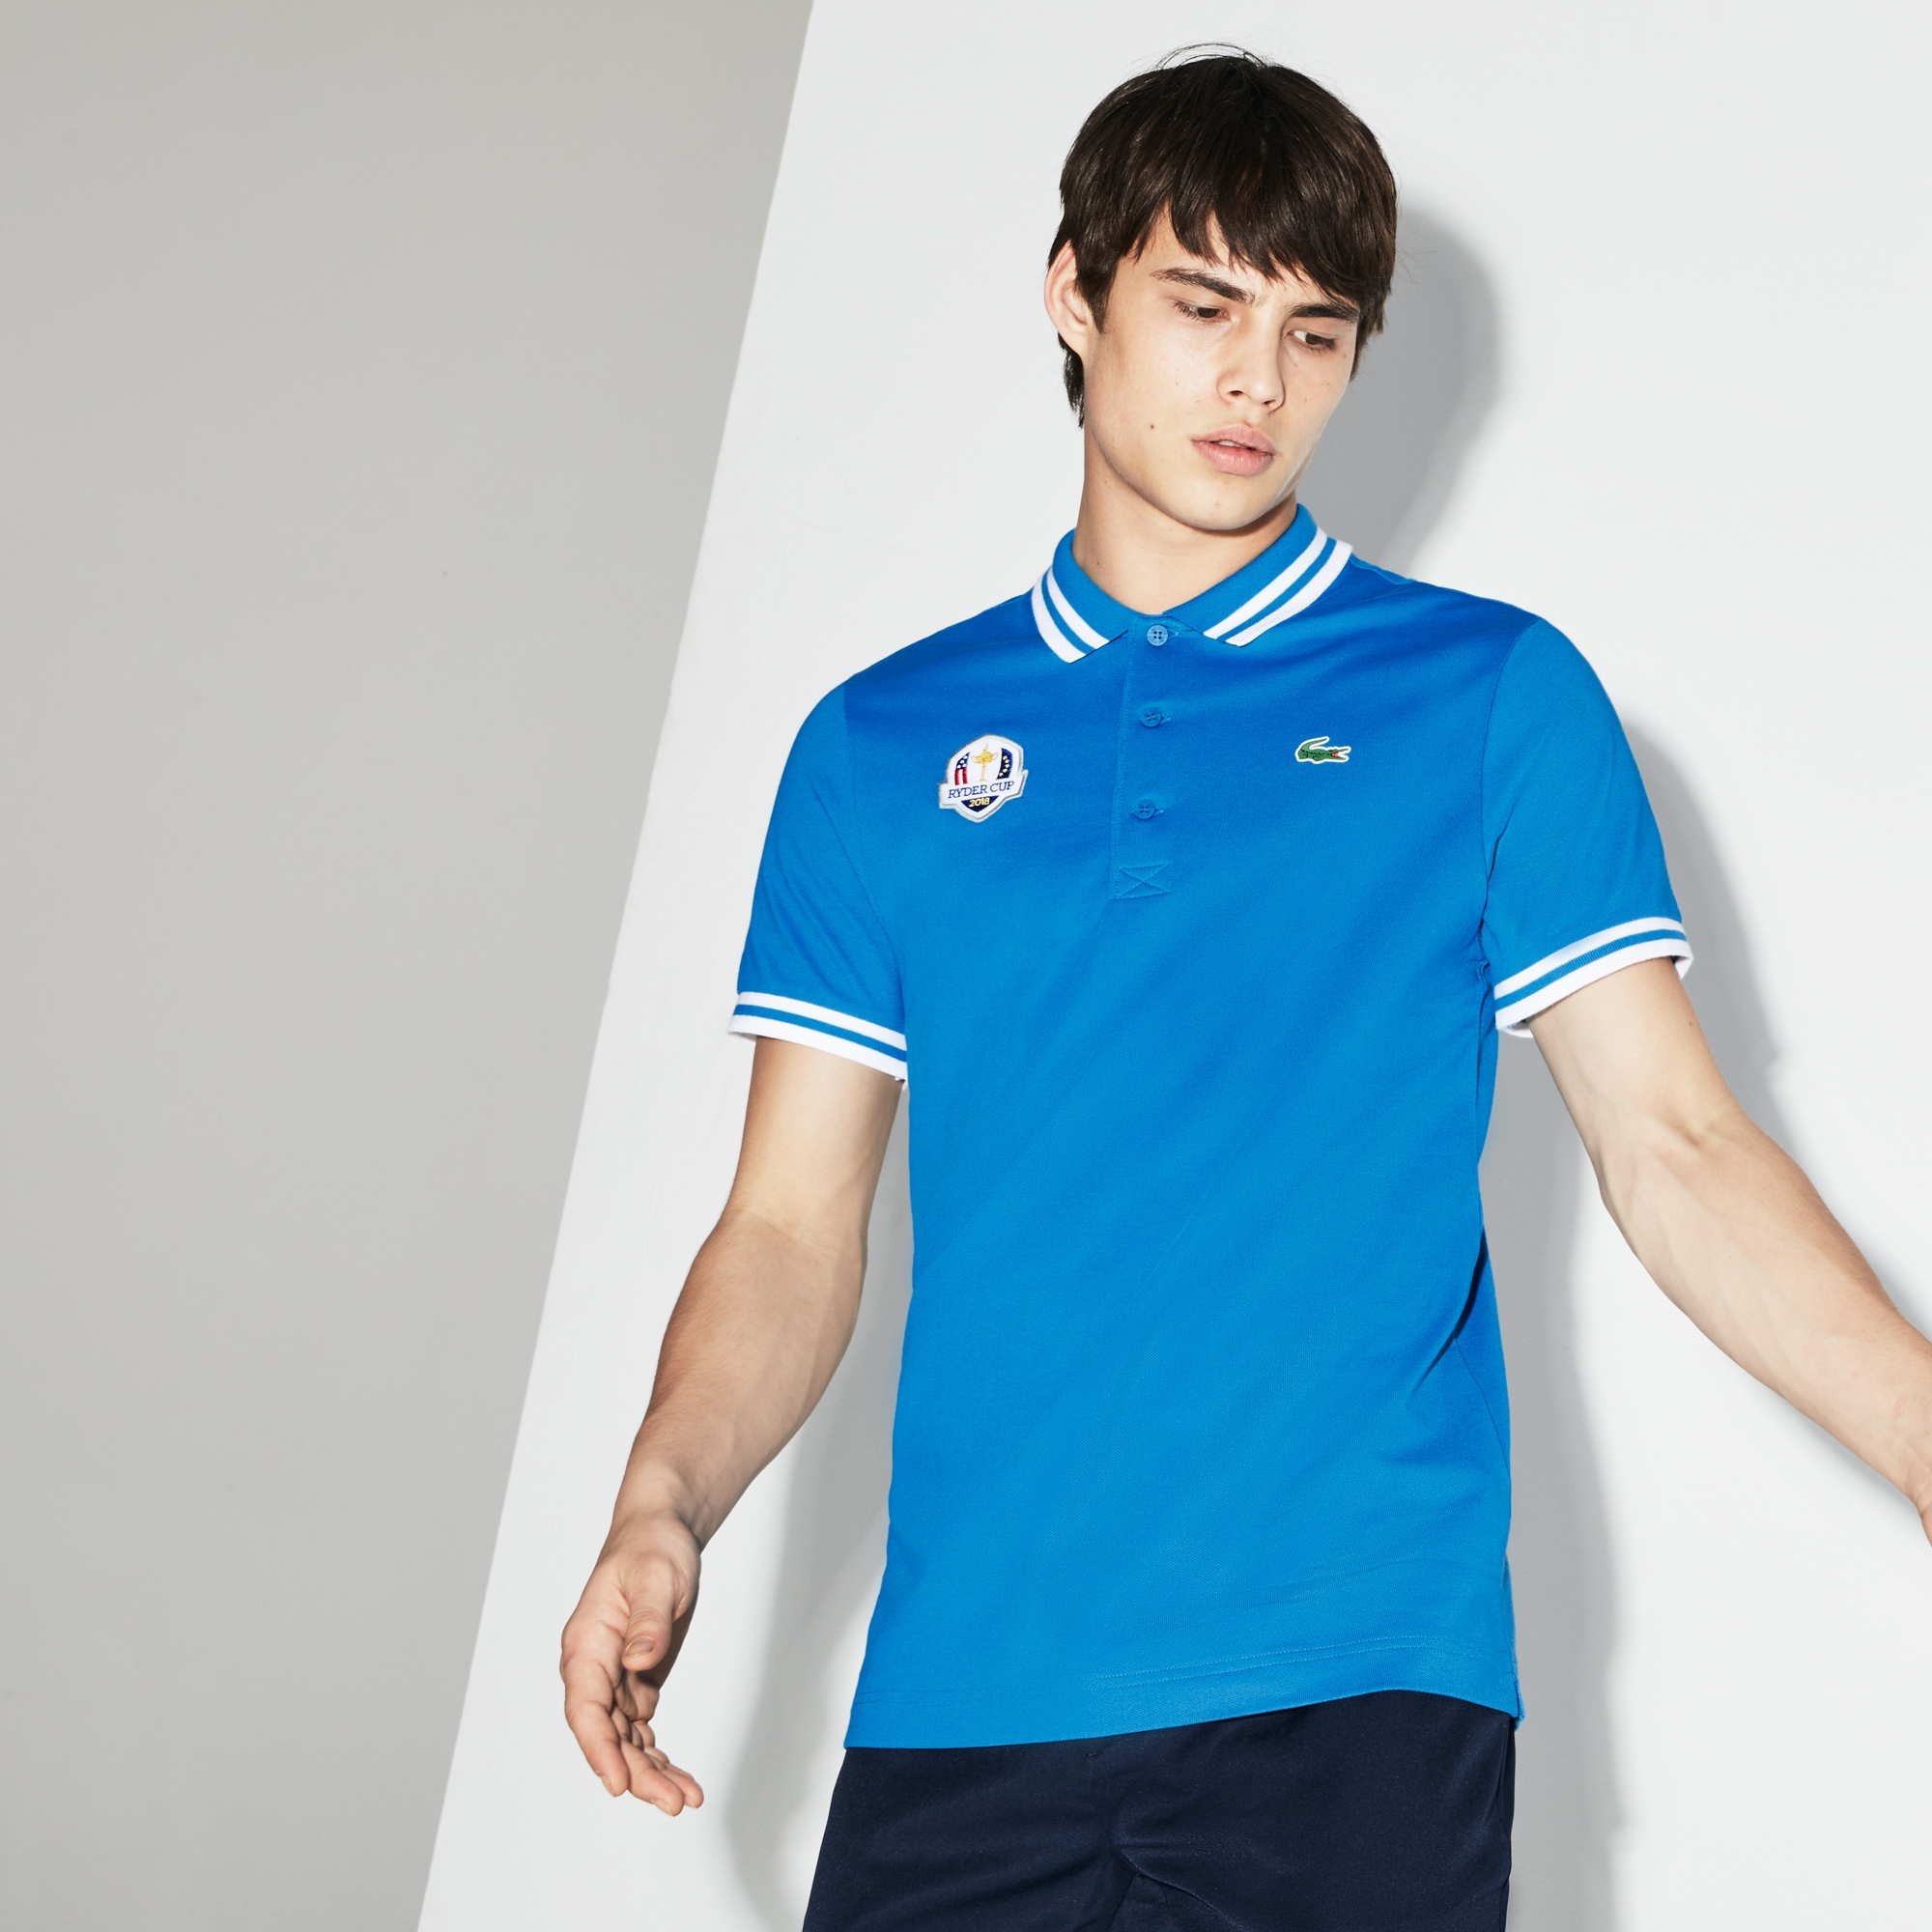 Lacoste - Herren LACOSTE SPORT Ryder Cup Edition Golf Poloshirt - 1